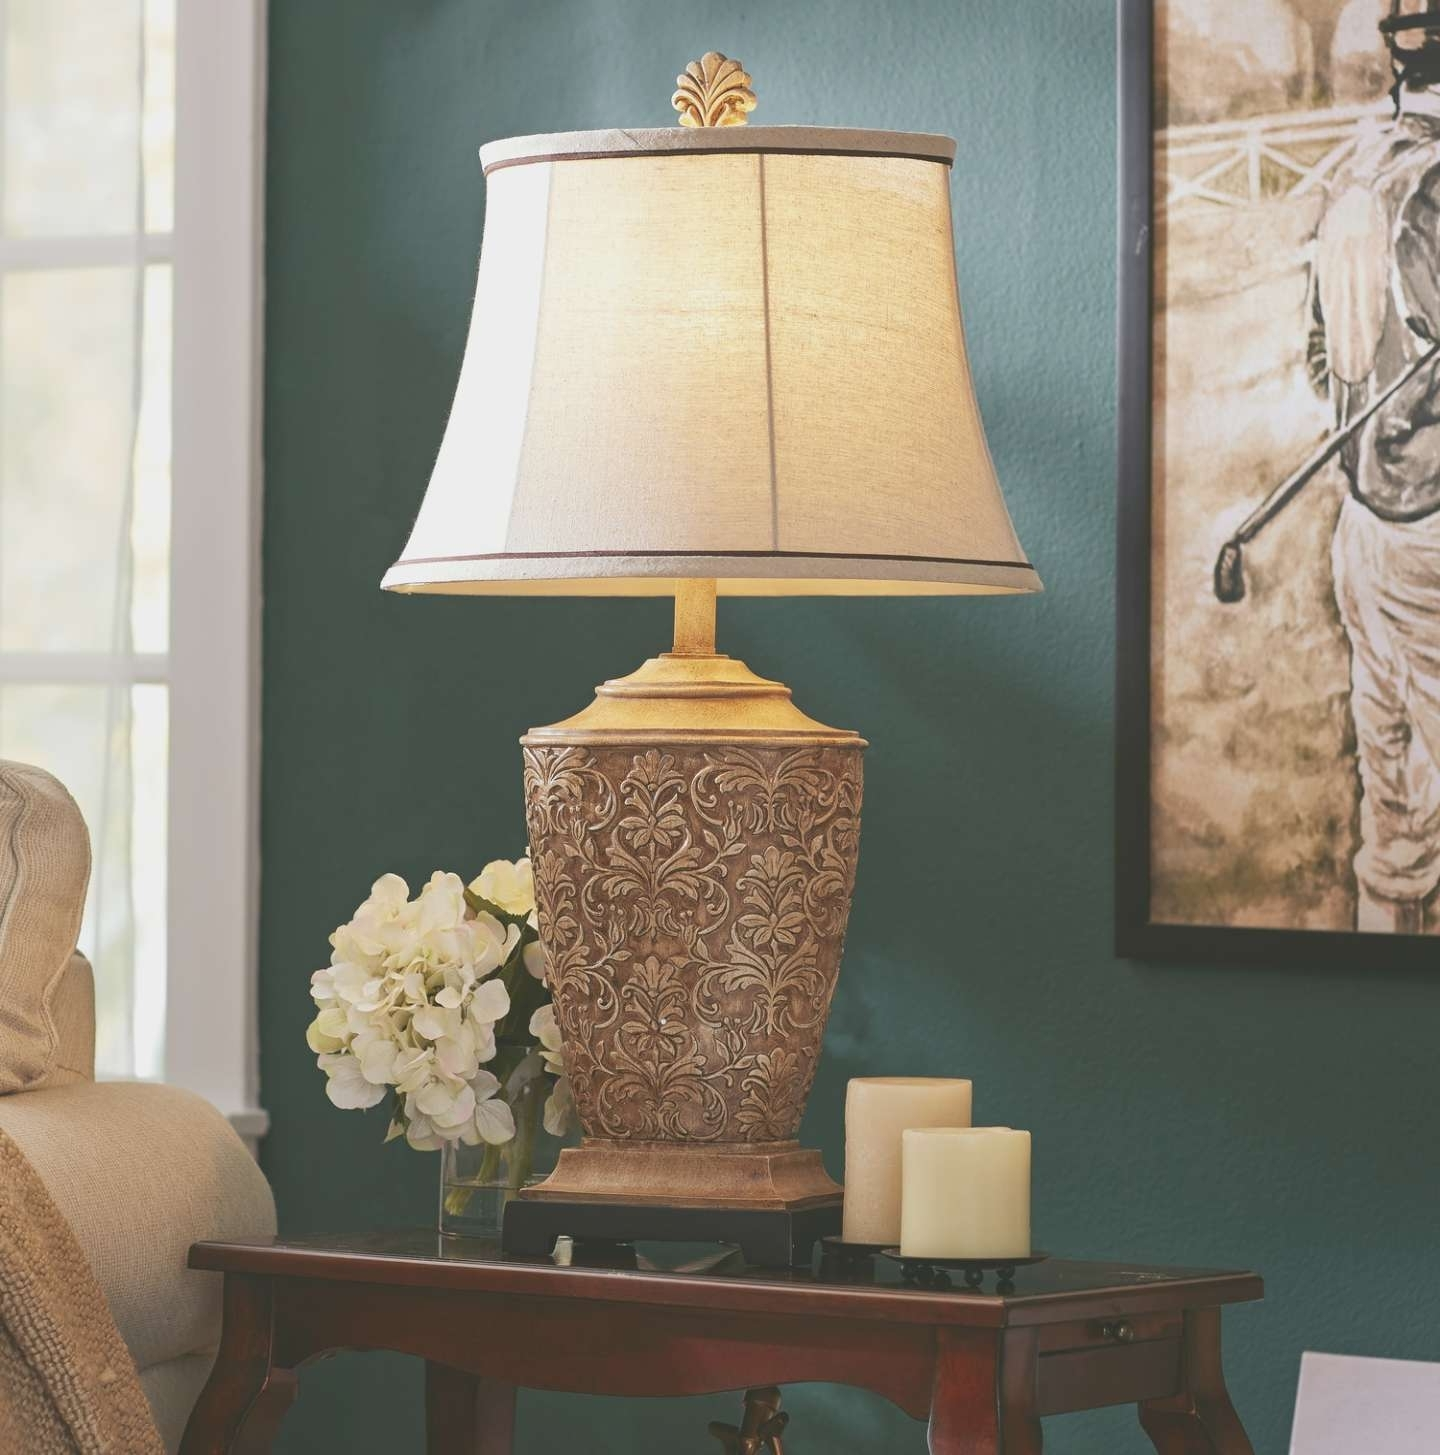 Favorite Living Room Table Lamps At Target With Living Room Table Lamps Target Tall Living Room Lamps Table Lamp (View 4 of 20)